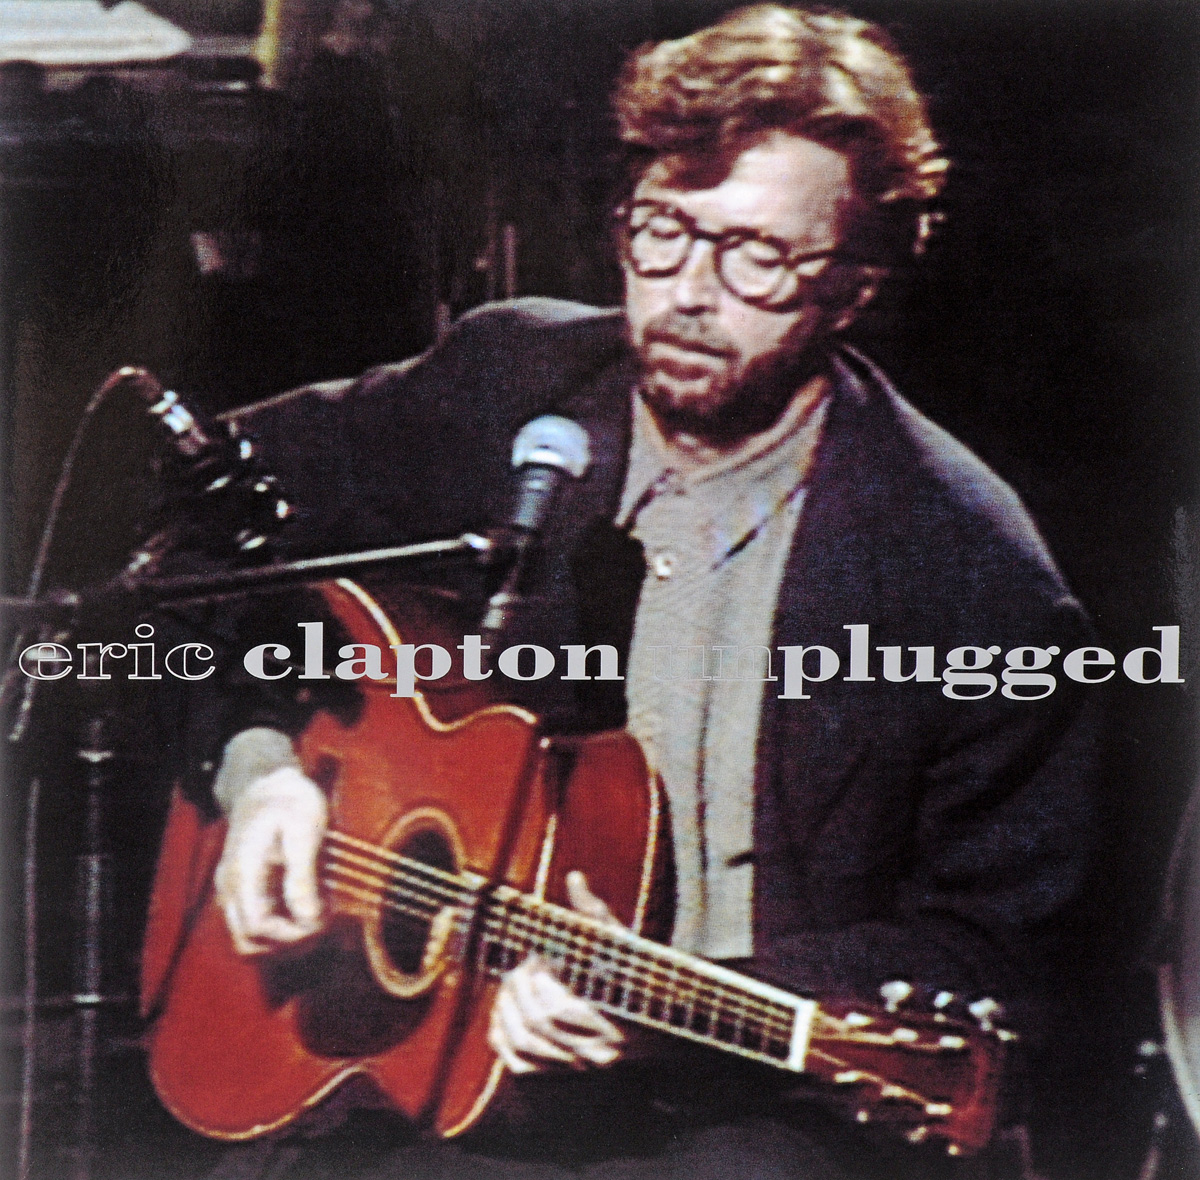 Eric Clapton. Unplugged (Limited Edition) [Non-US Version] [Live] 26c31i am26c31ipwg4 tssop 16